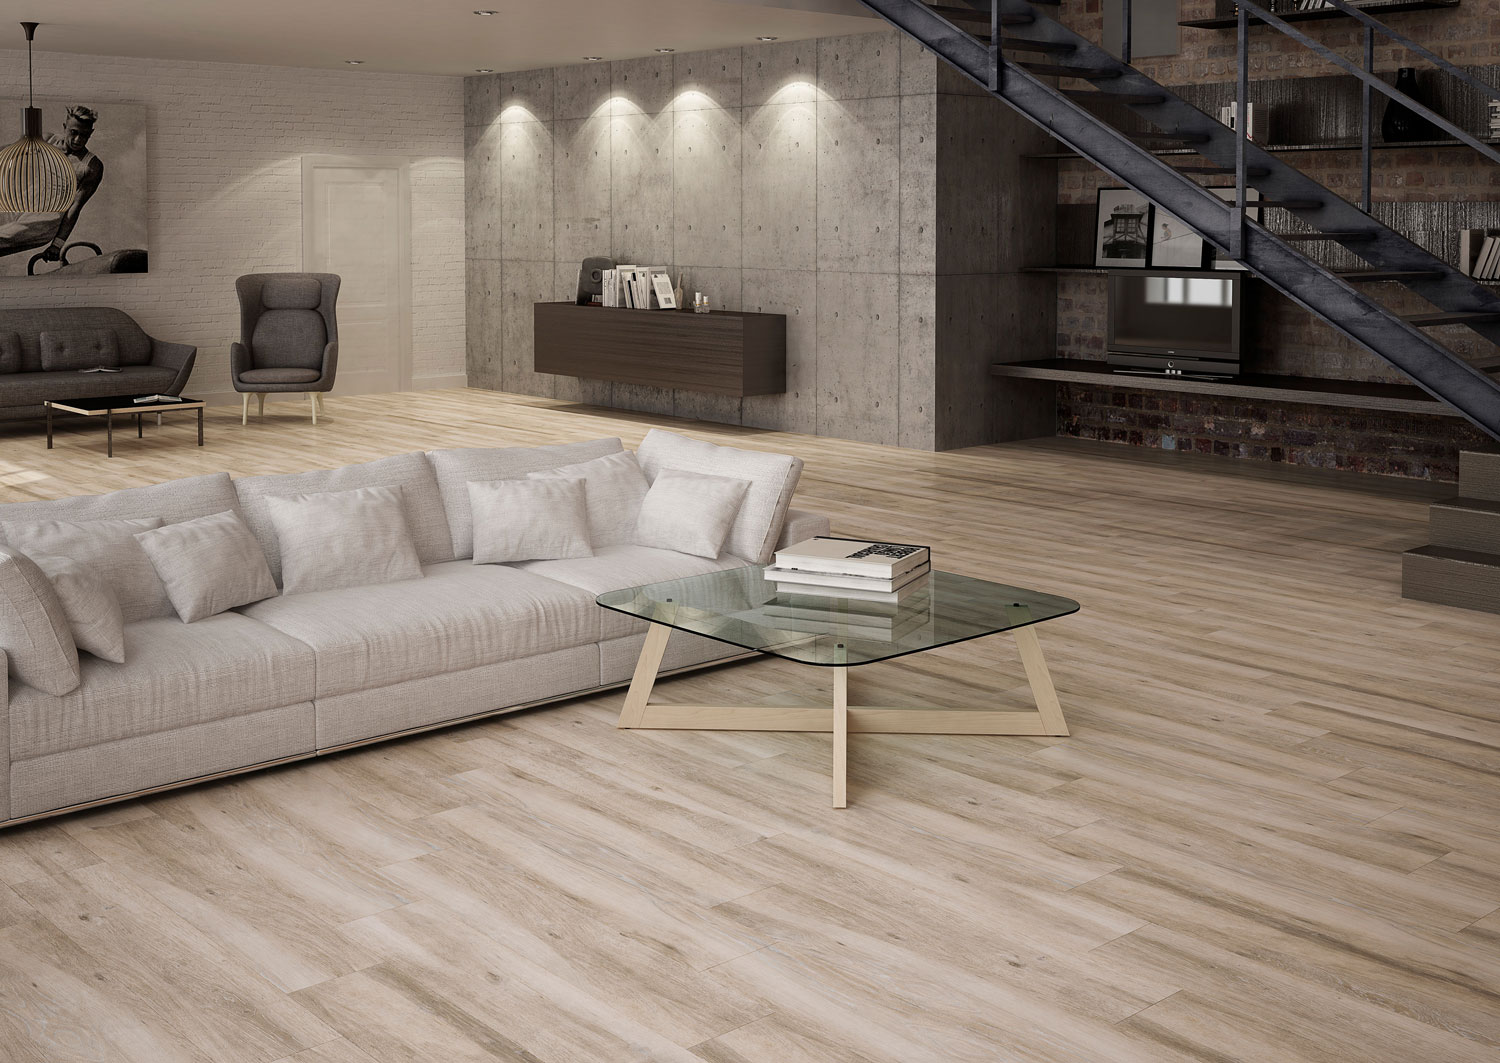 Pacano Porcelain Floor Tile- Taupe sample- by Lint Tile